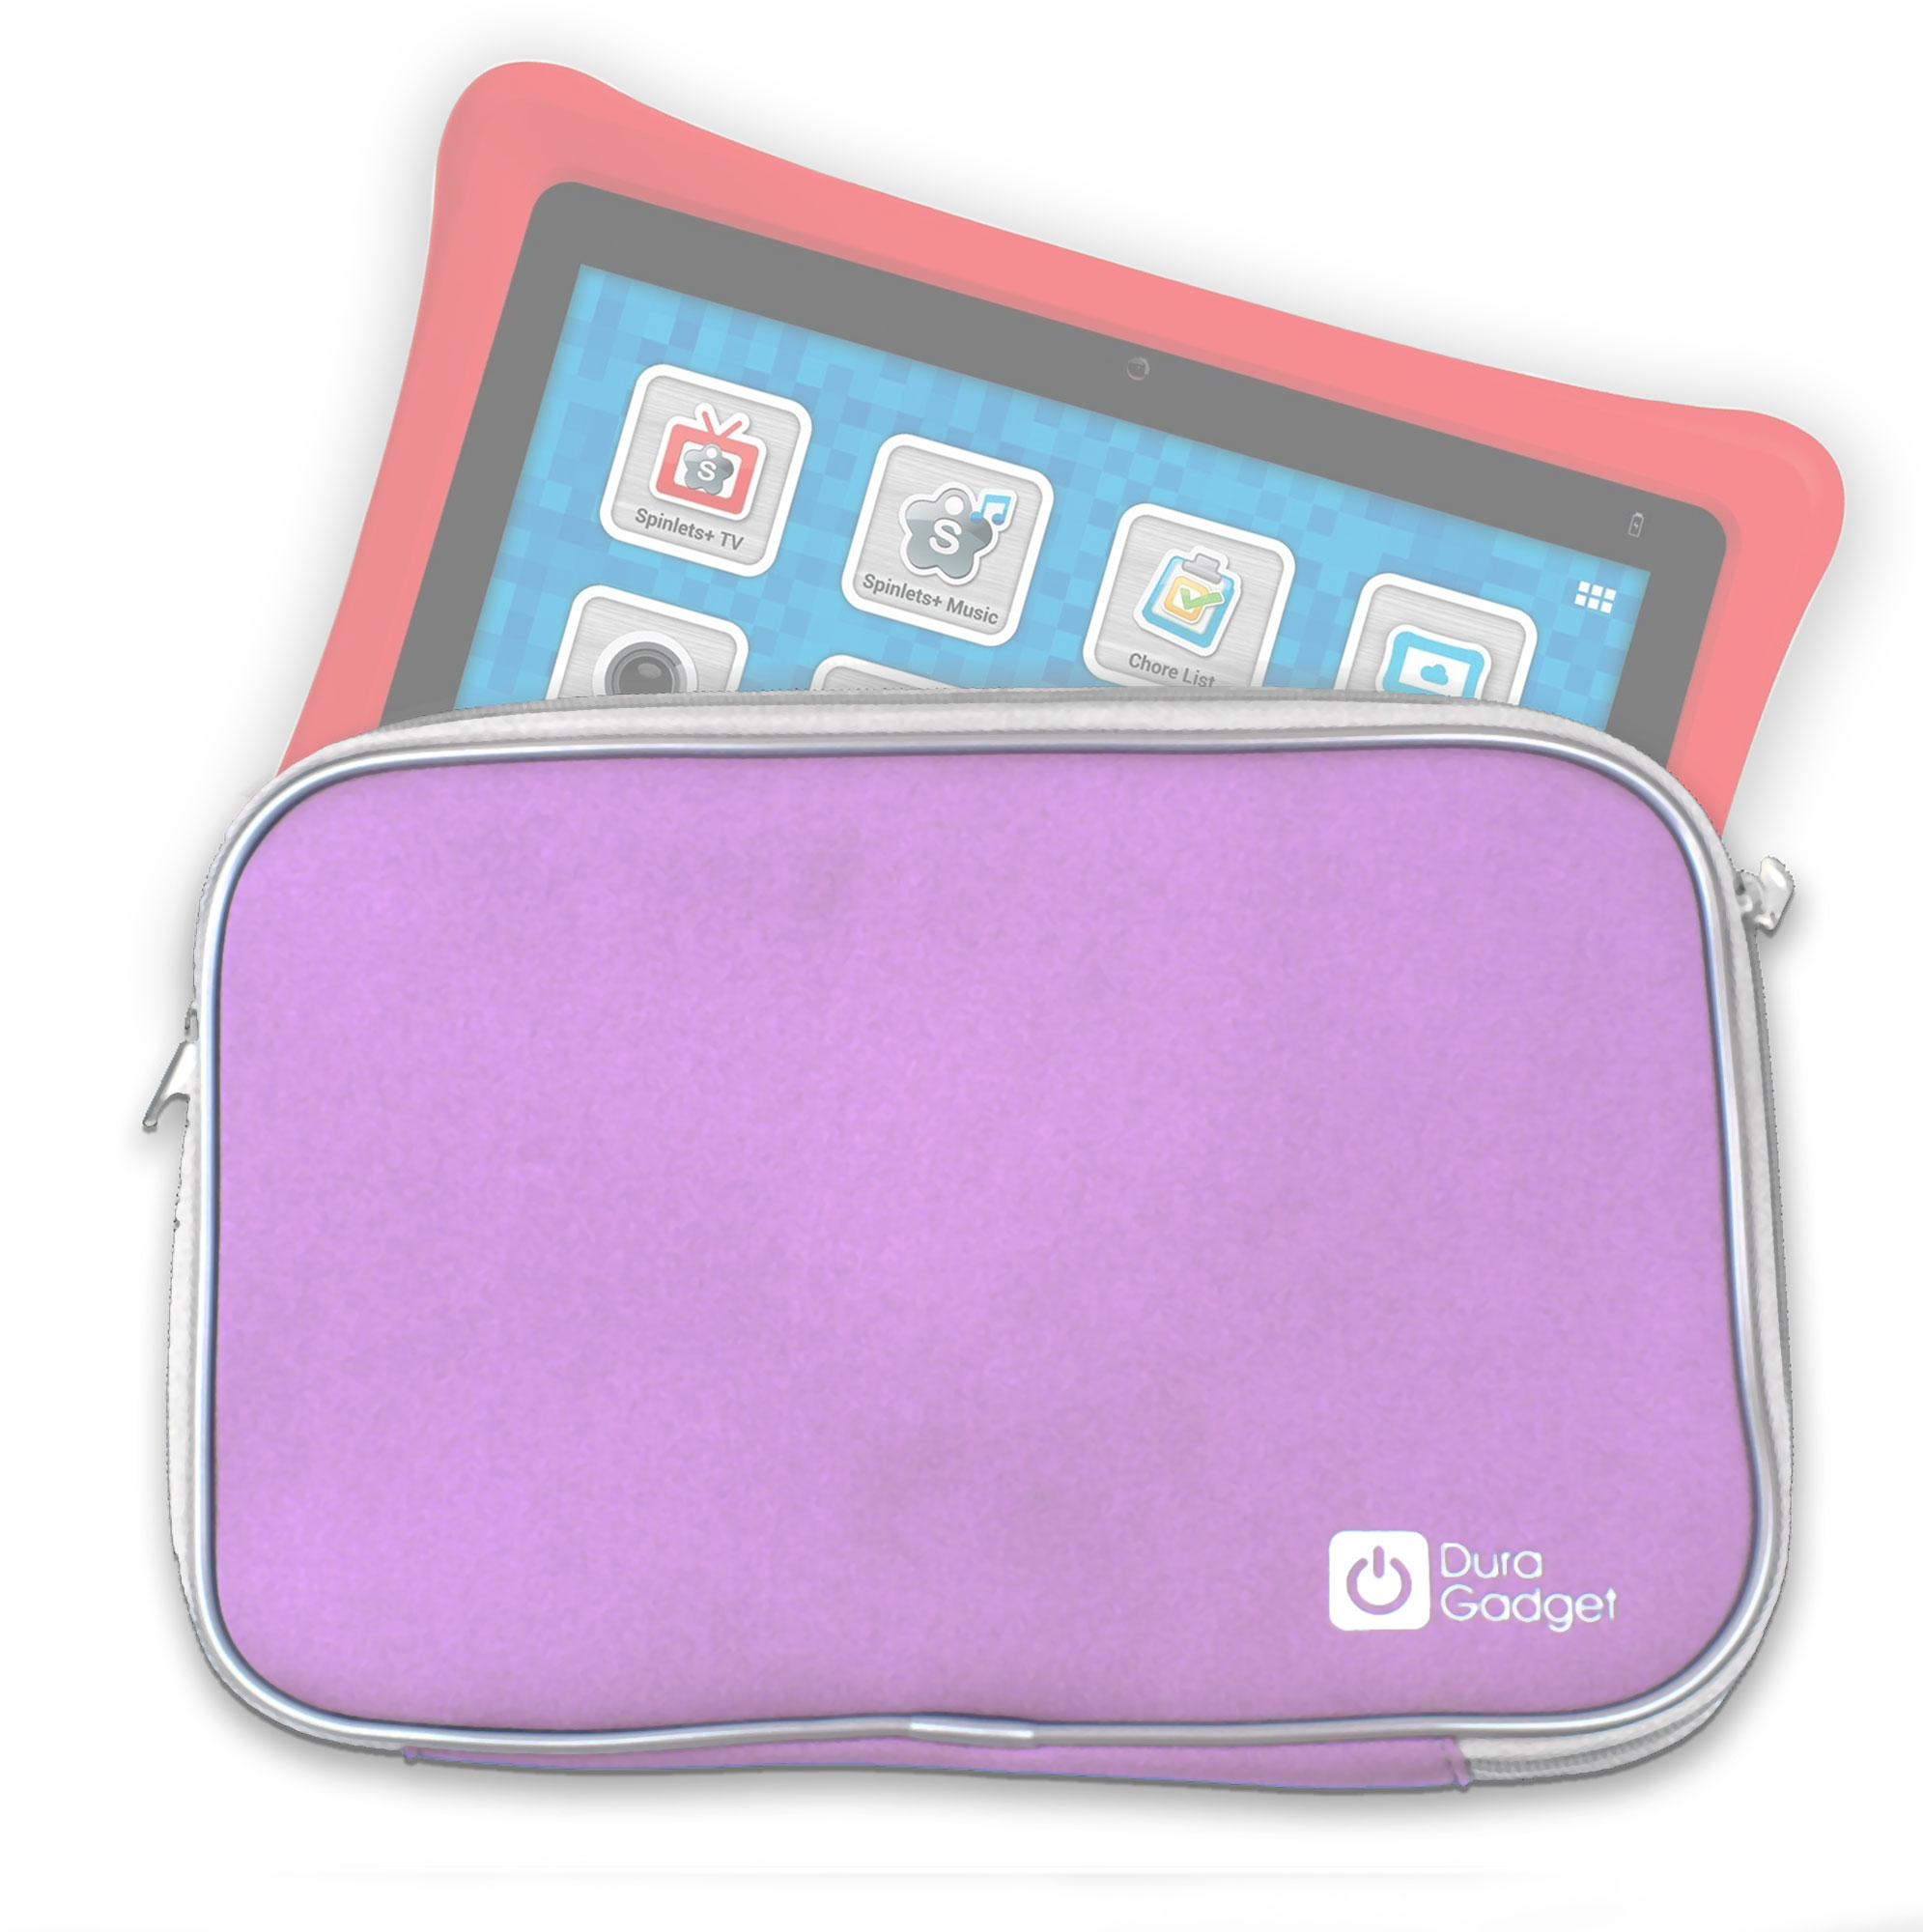 Stylish & Soft Pink Sleeve For Nabi Tablet In Water Resistant Neoprene